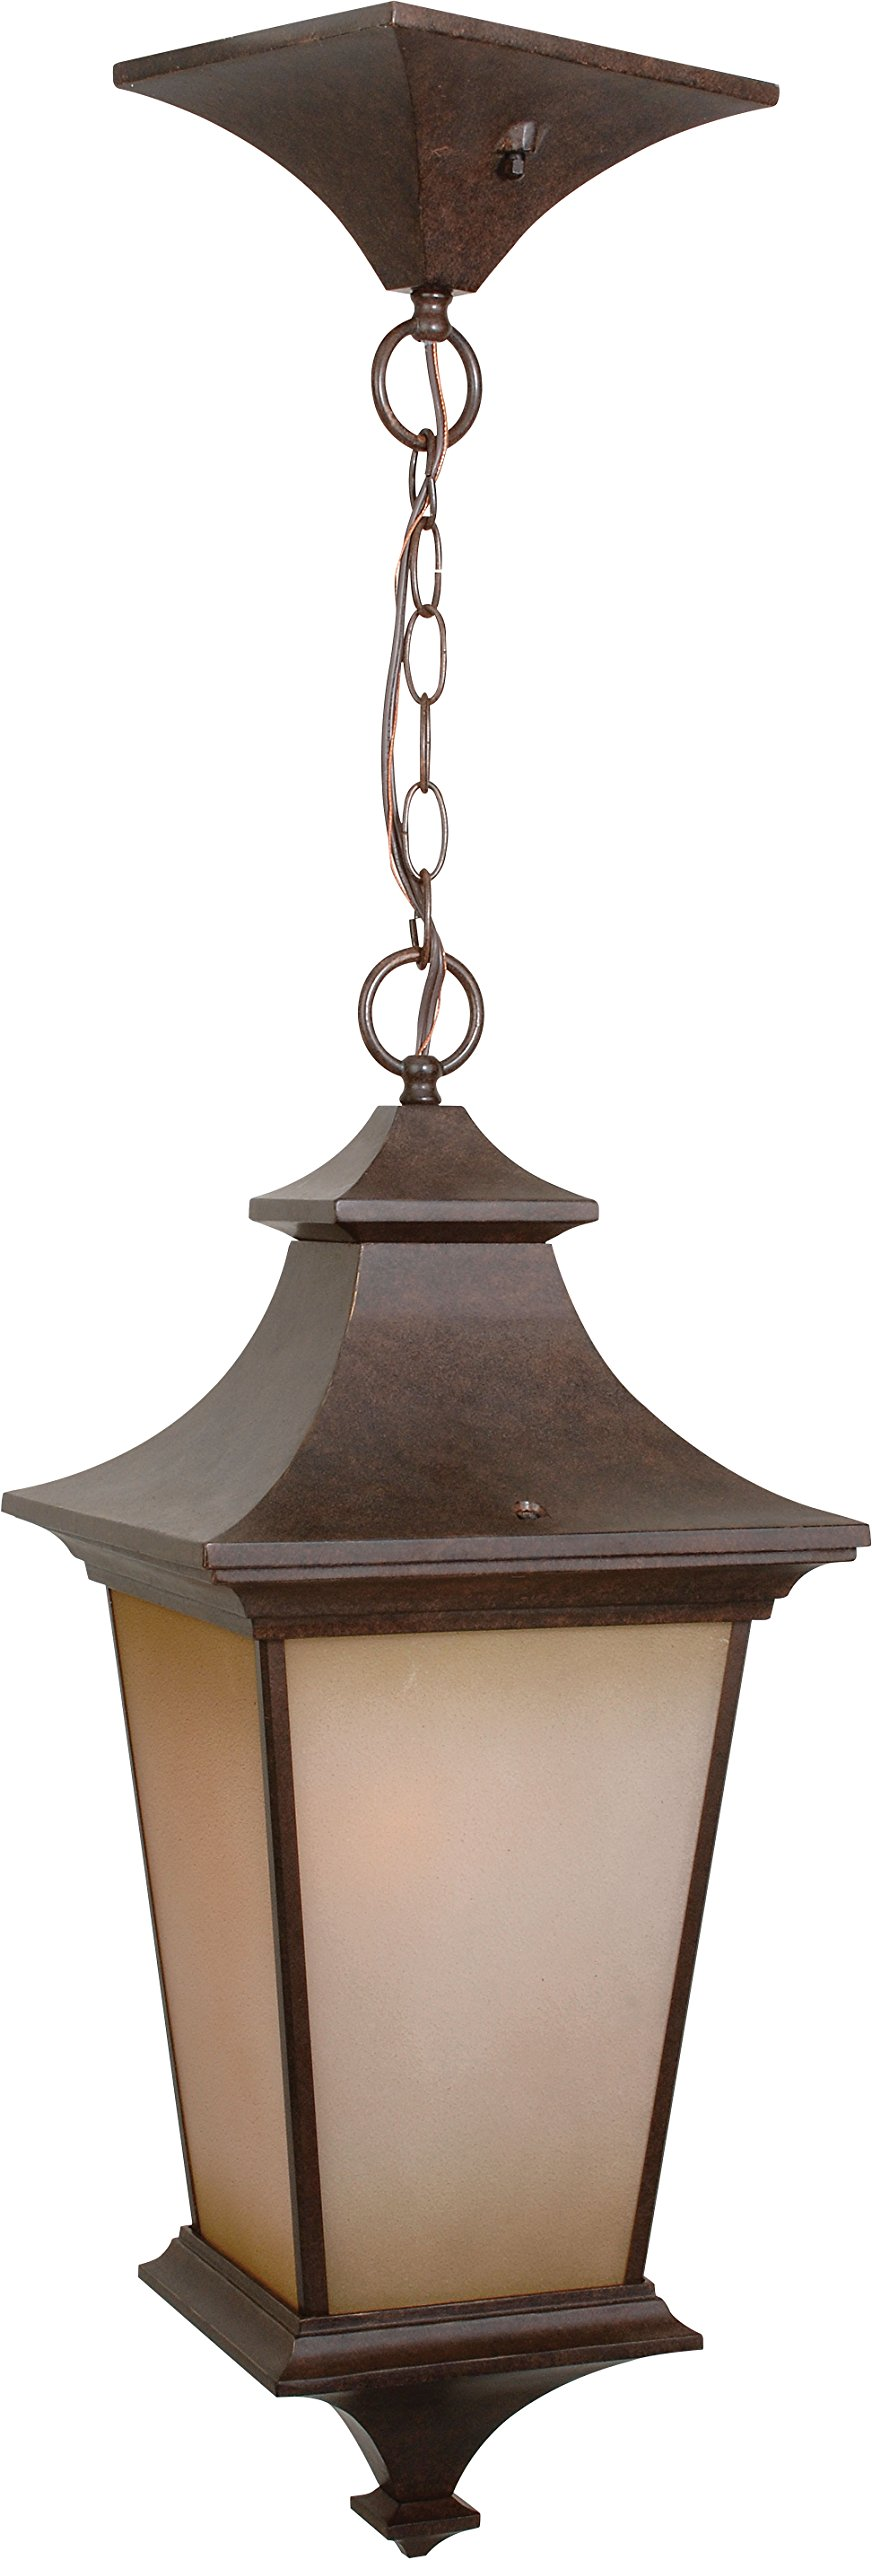 Craftmade Z1321-98 Hanging Lantern with Champagne Frost Glass Shades, Bronze Finish